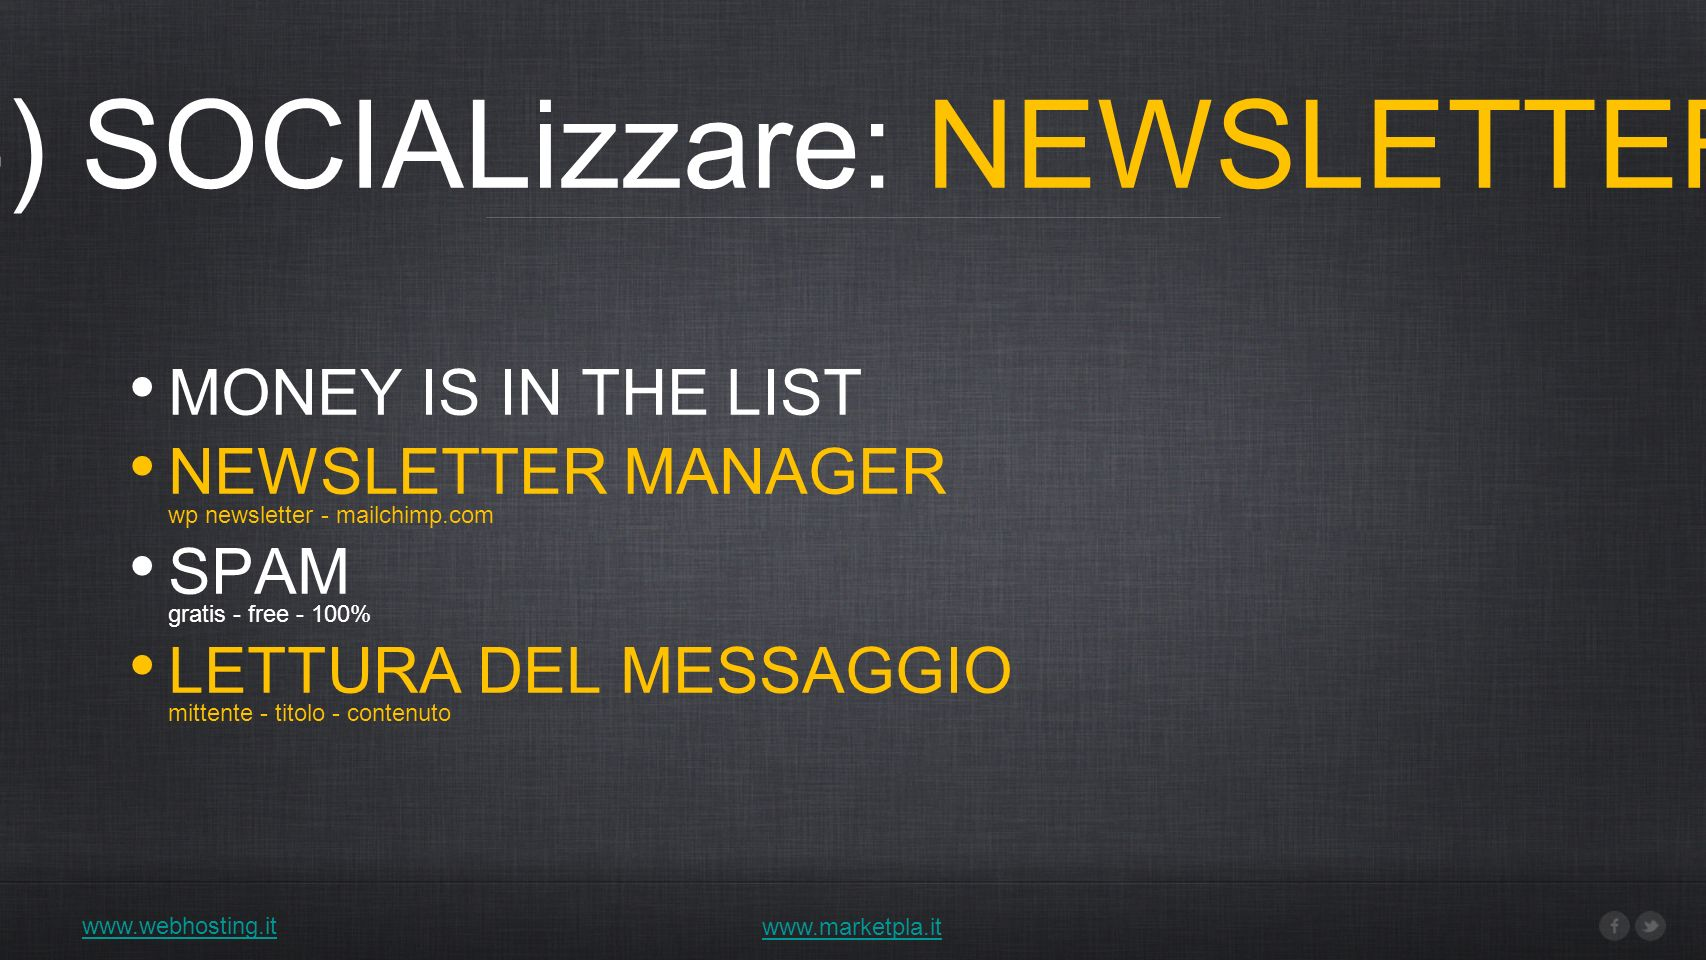 4) SOCIALizzare: NEWSLETTER www.webhosting.it www.marketpla.it MONEY IS IN THE LIST NEWSLETTER MANAGER wp newsletter - mailchimp.com SPAM gratis - free - 100% LETTURA DEL MESSAGGIO mittente - titolo - contenuto